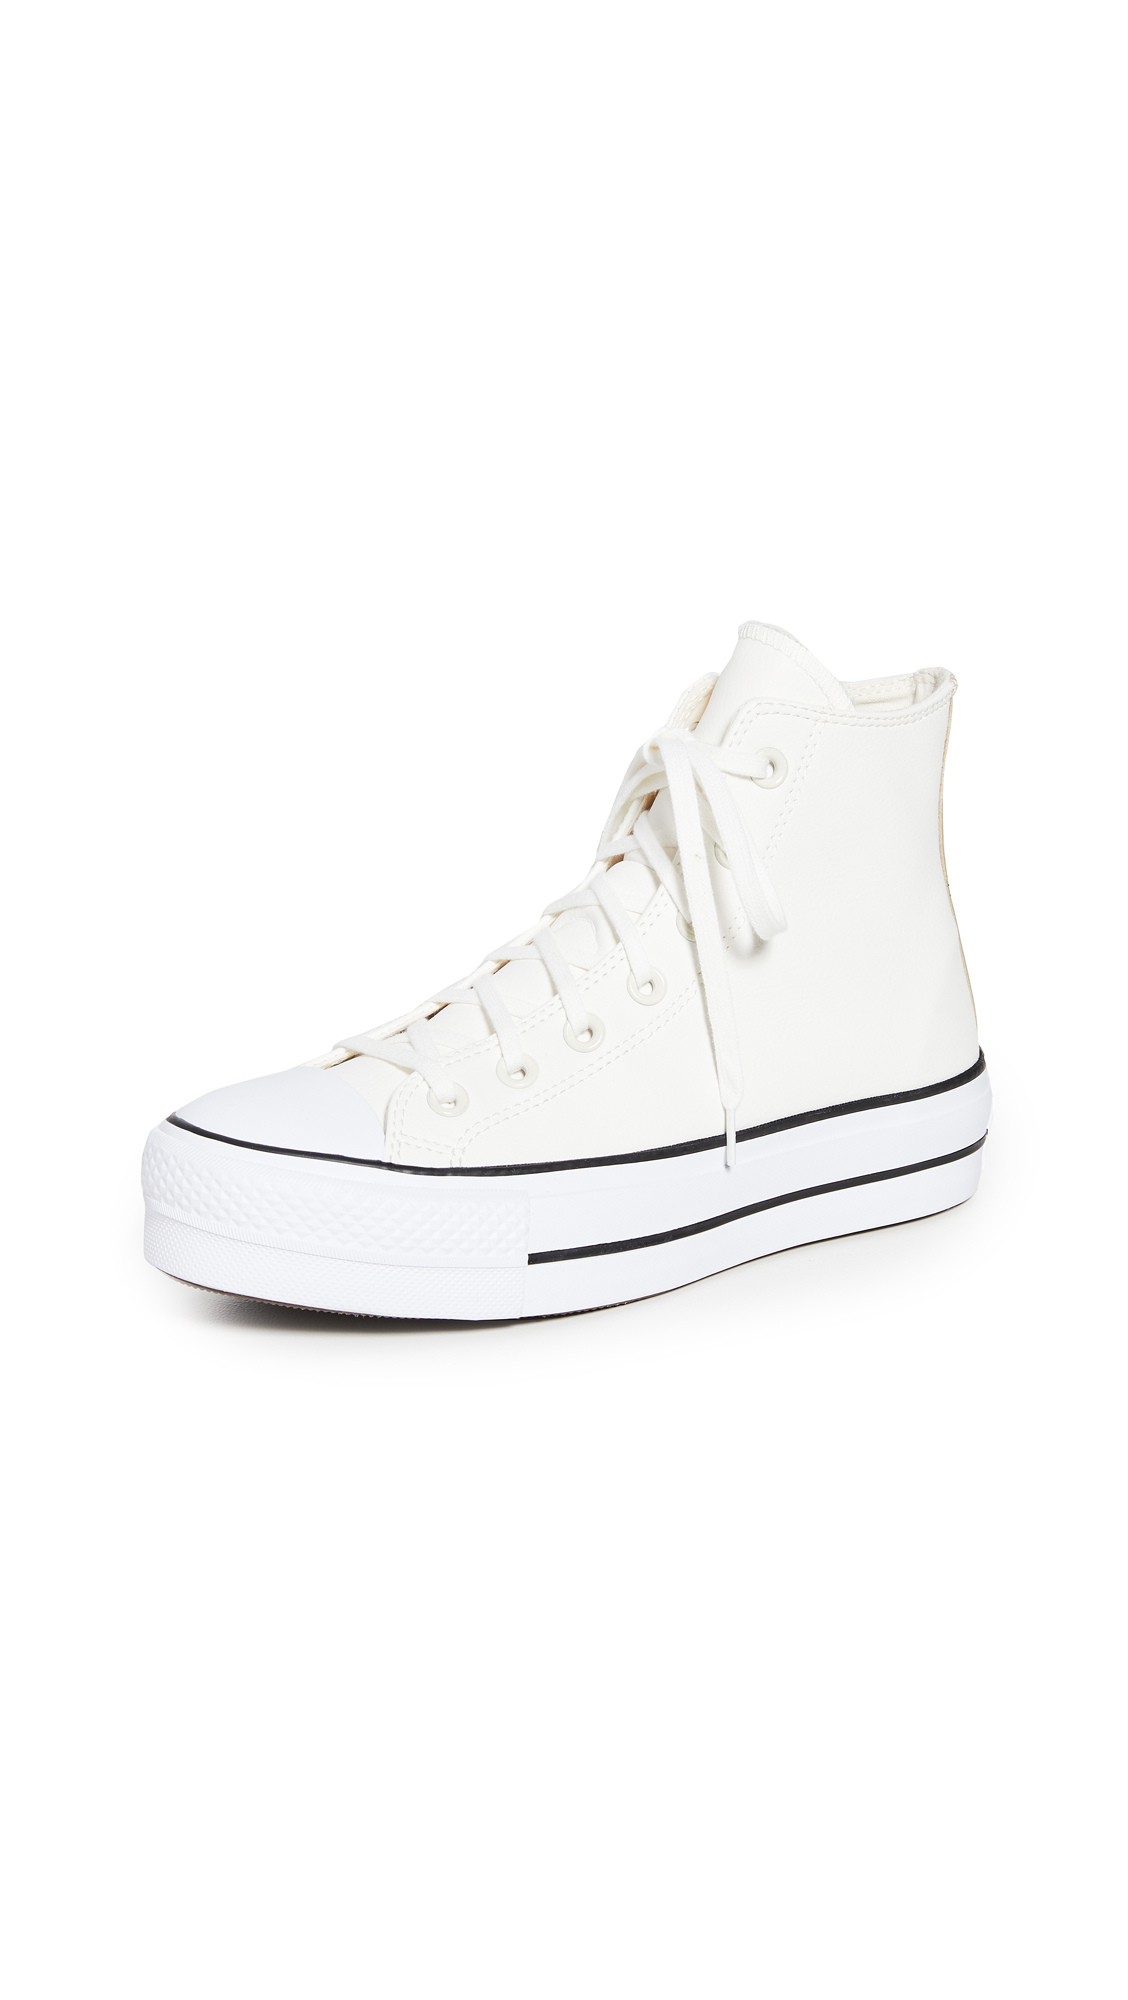 CONVERSE CHUCK TAYLOR LIFT ALL STAR HIGH TOP SNEAKERS